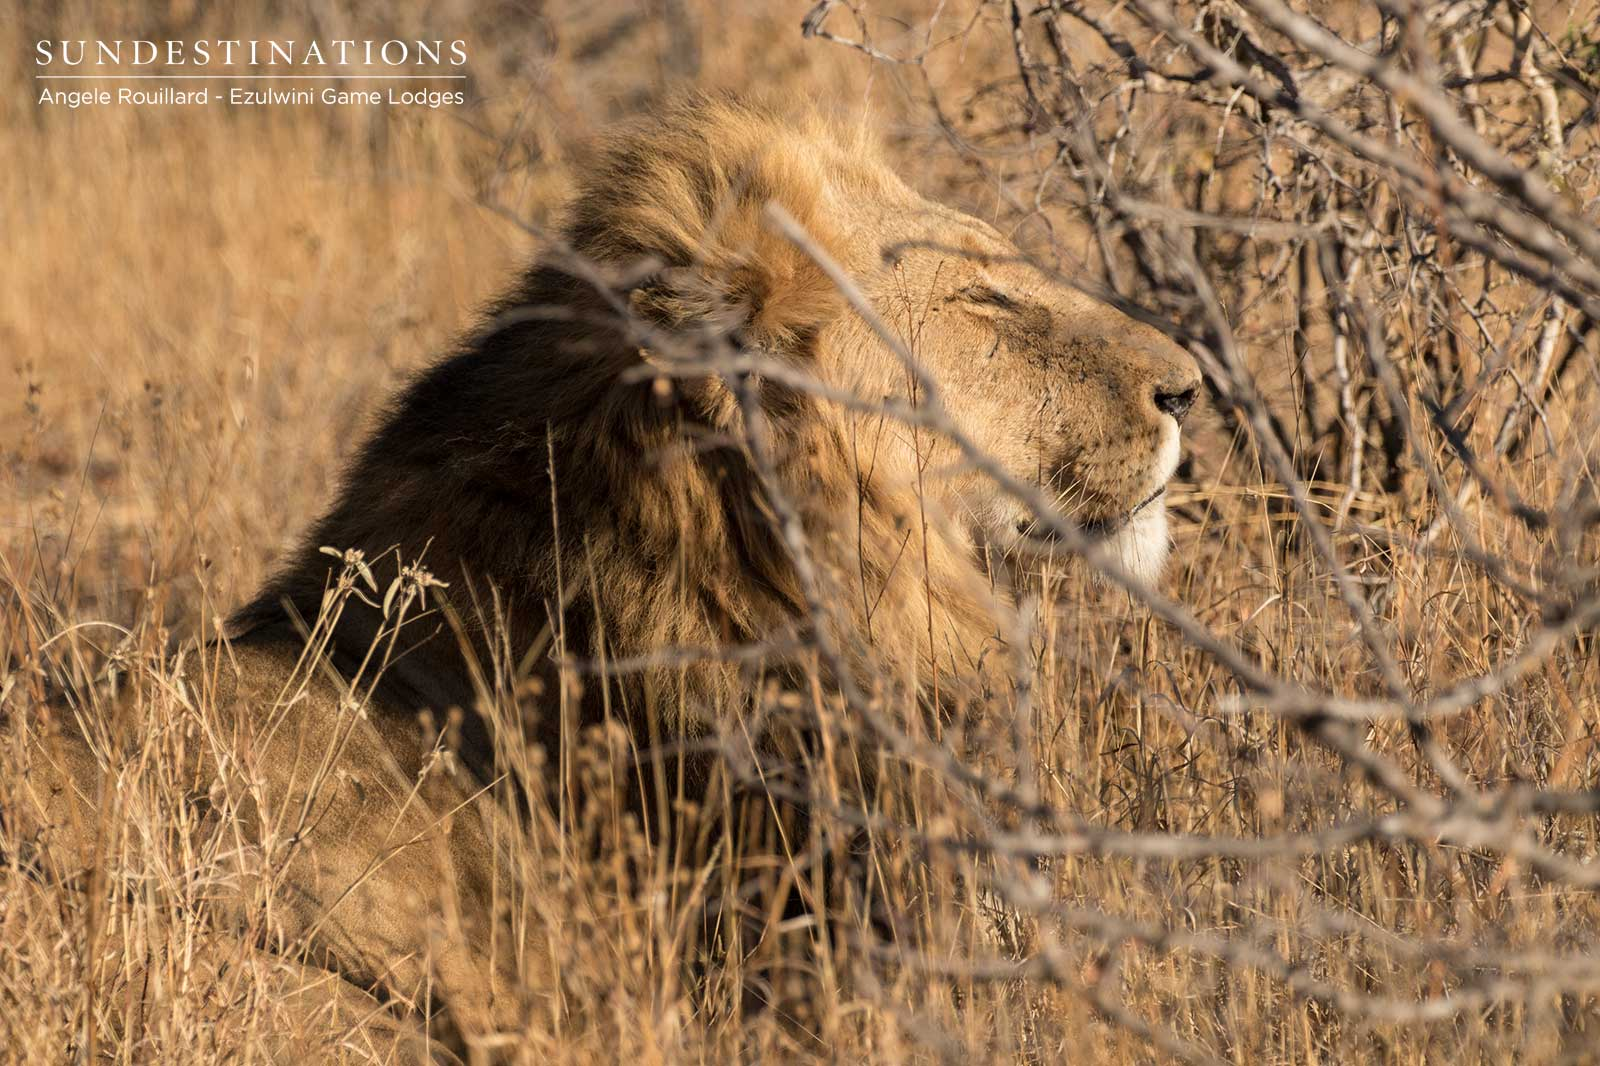 Male Lion Ezulwini Game Lodges